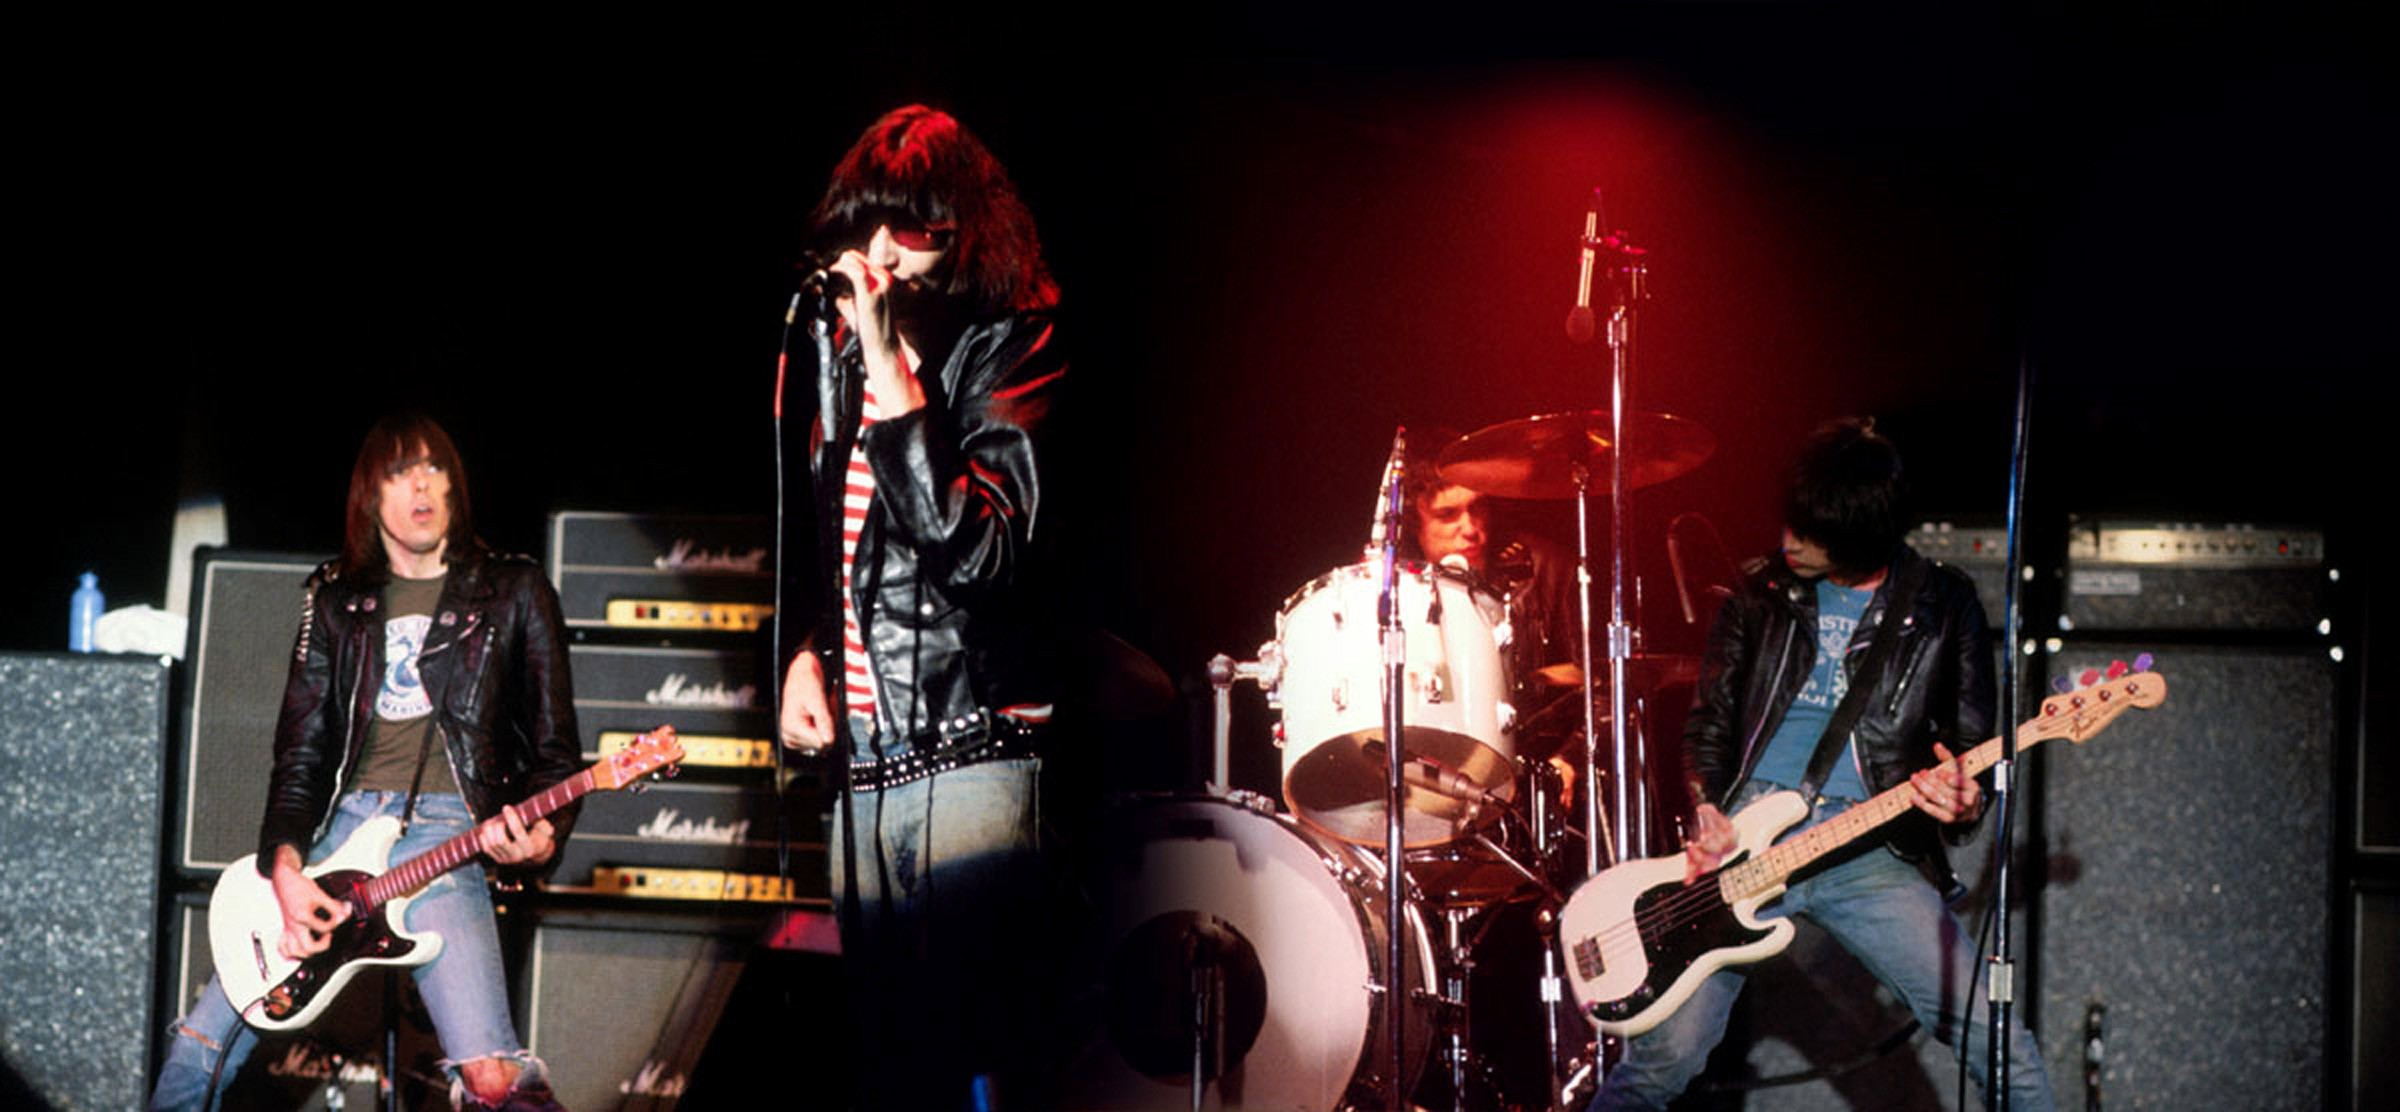 Marky Ramone Exclusive Read An Excerpt From Punk Rock Blitzkrieg